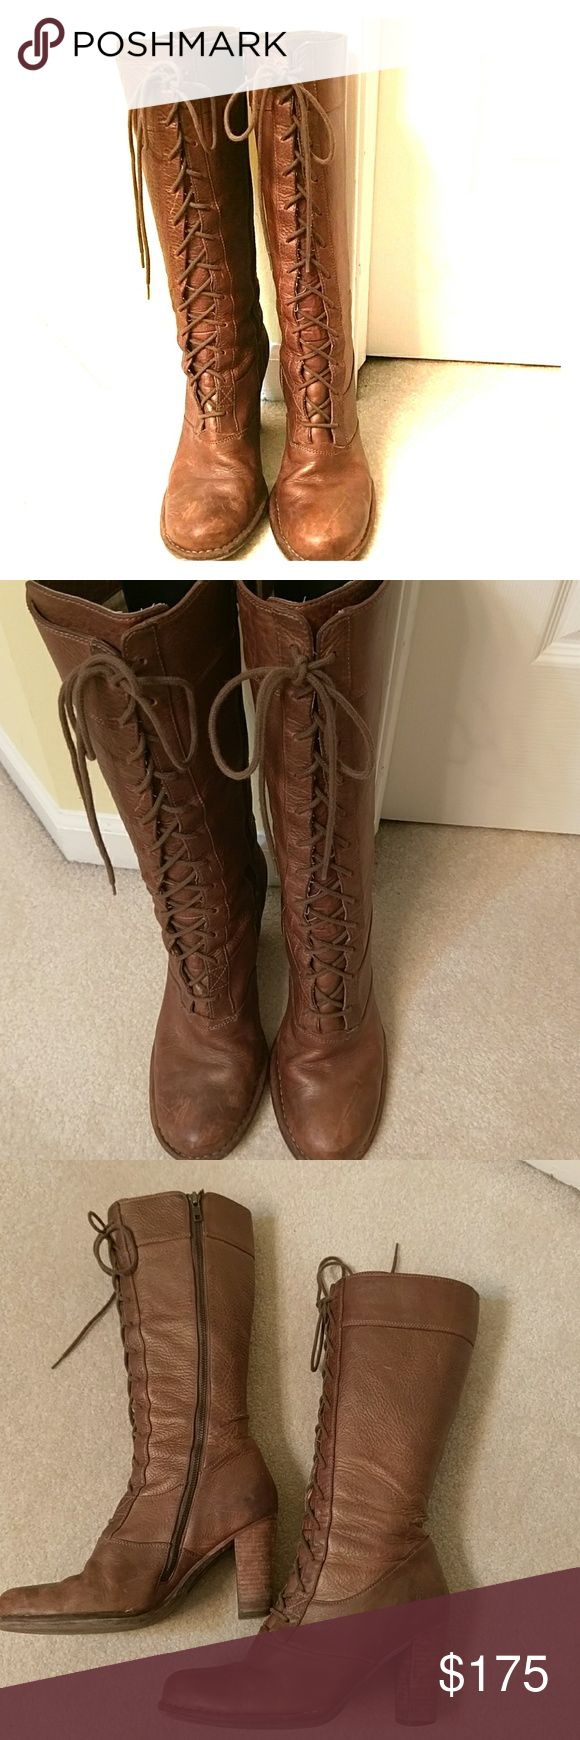 Frye lace-up tall boots Beautifully destressed by design adds to the charm of the boot. In great pre-loved condition. Golden brown color. 3.5 inch heel, side zipper, tie in front and can adjust for calf's size. Sorry no trades. Frye Shoes Heeled Boots